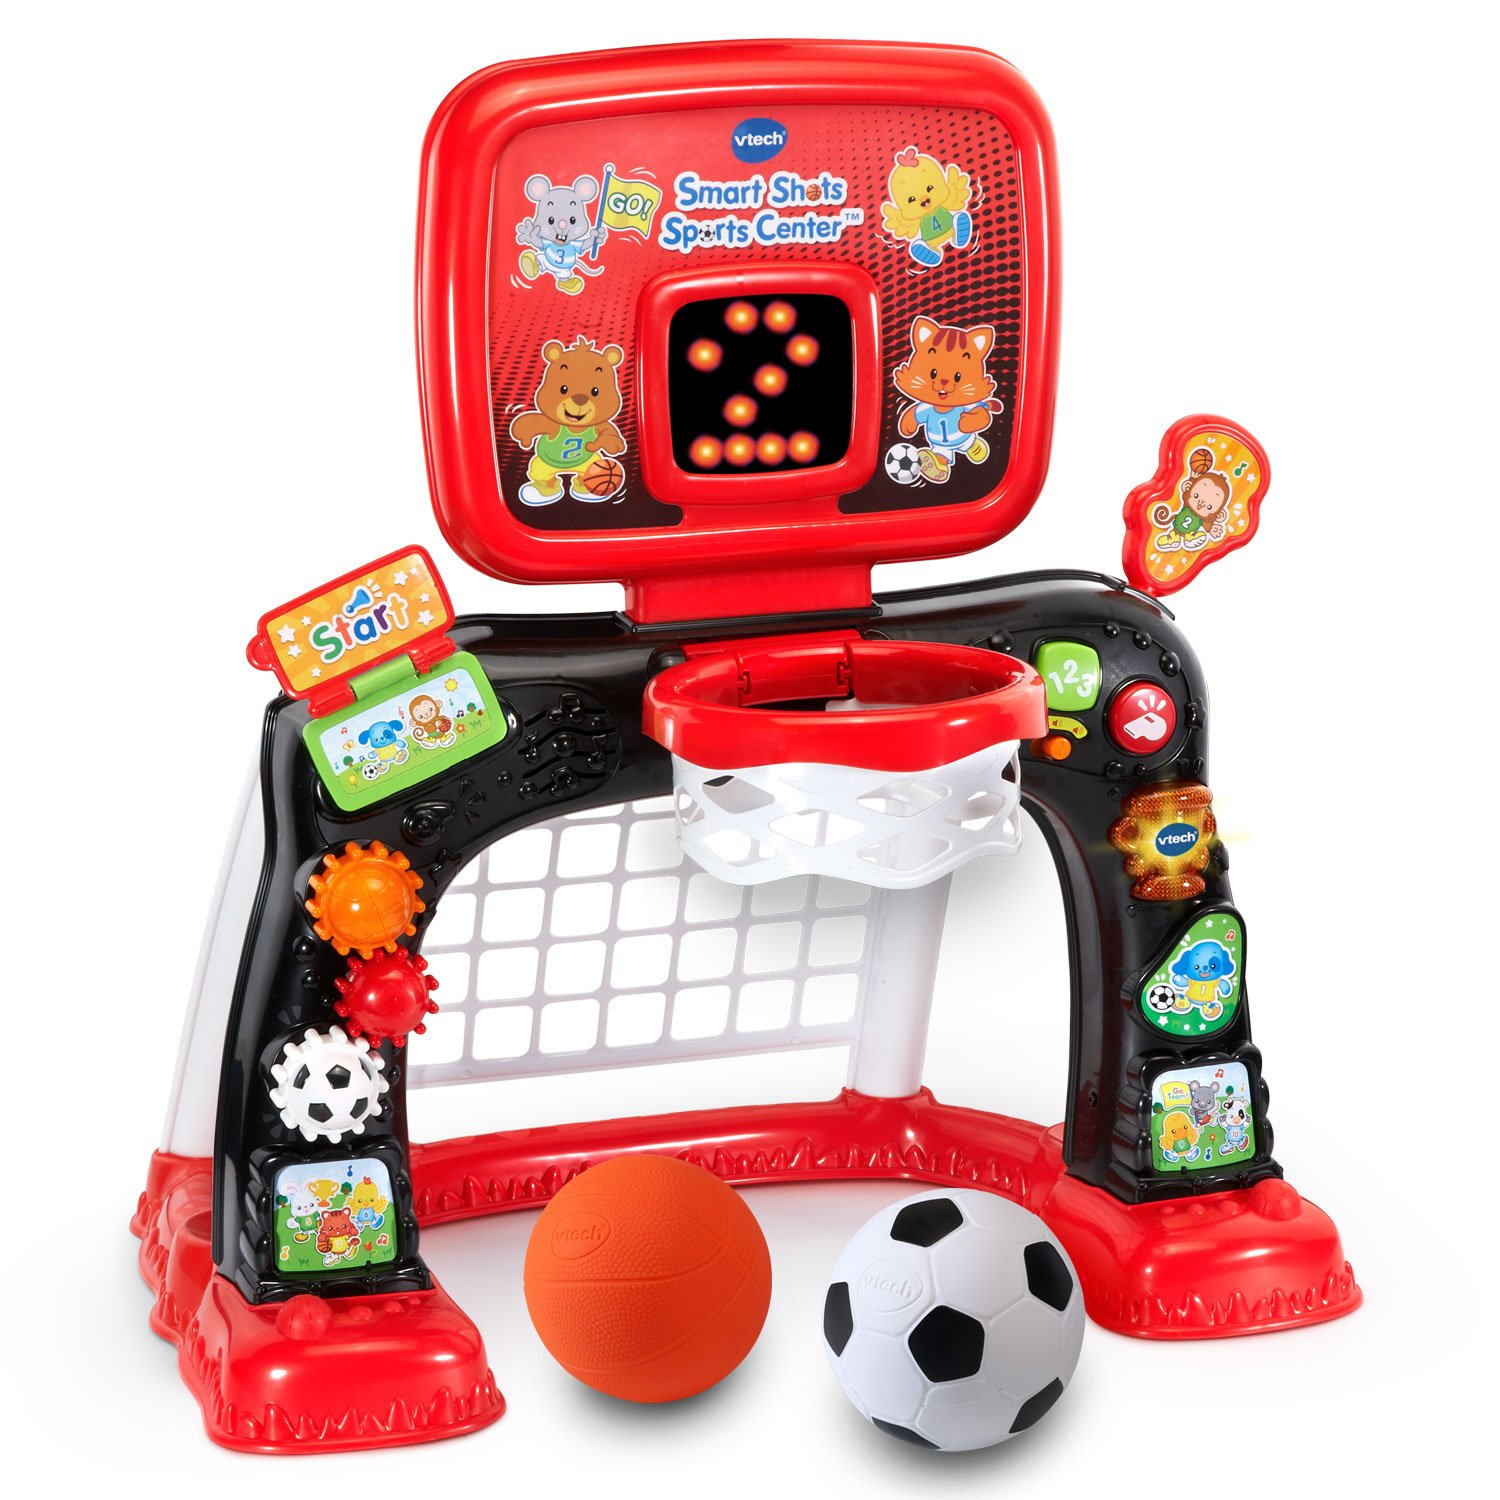 VTech Smart Shots Sports Center Amazon Exclusive (Frustration Free Packaging), Red by VTech